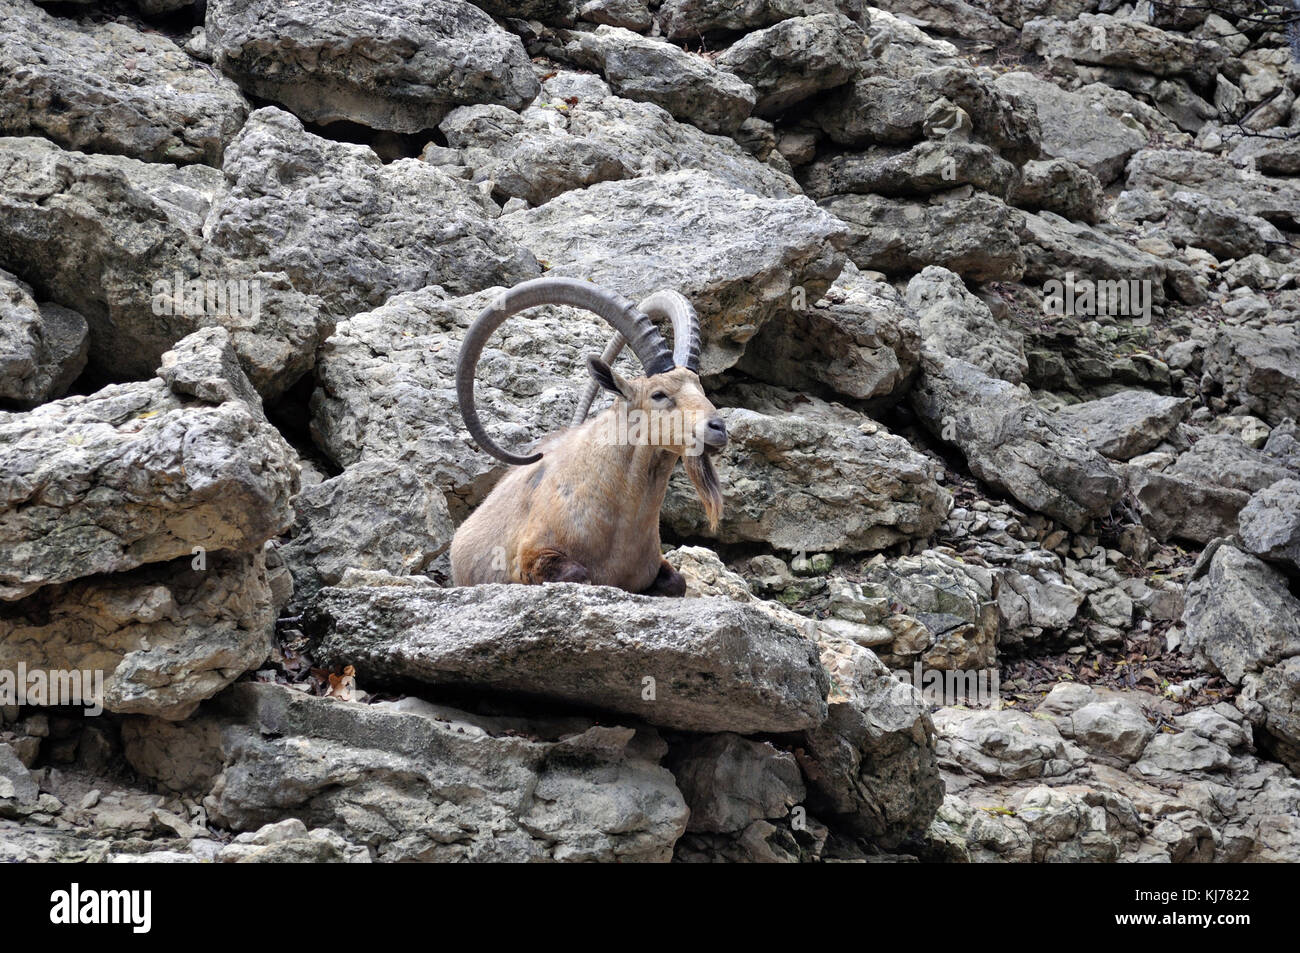 A longhorn goat resting in the midst of ragged rocks - Stock Image